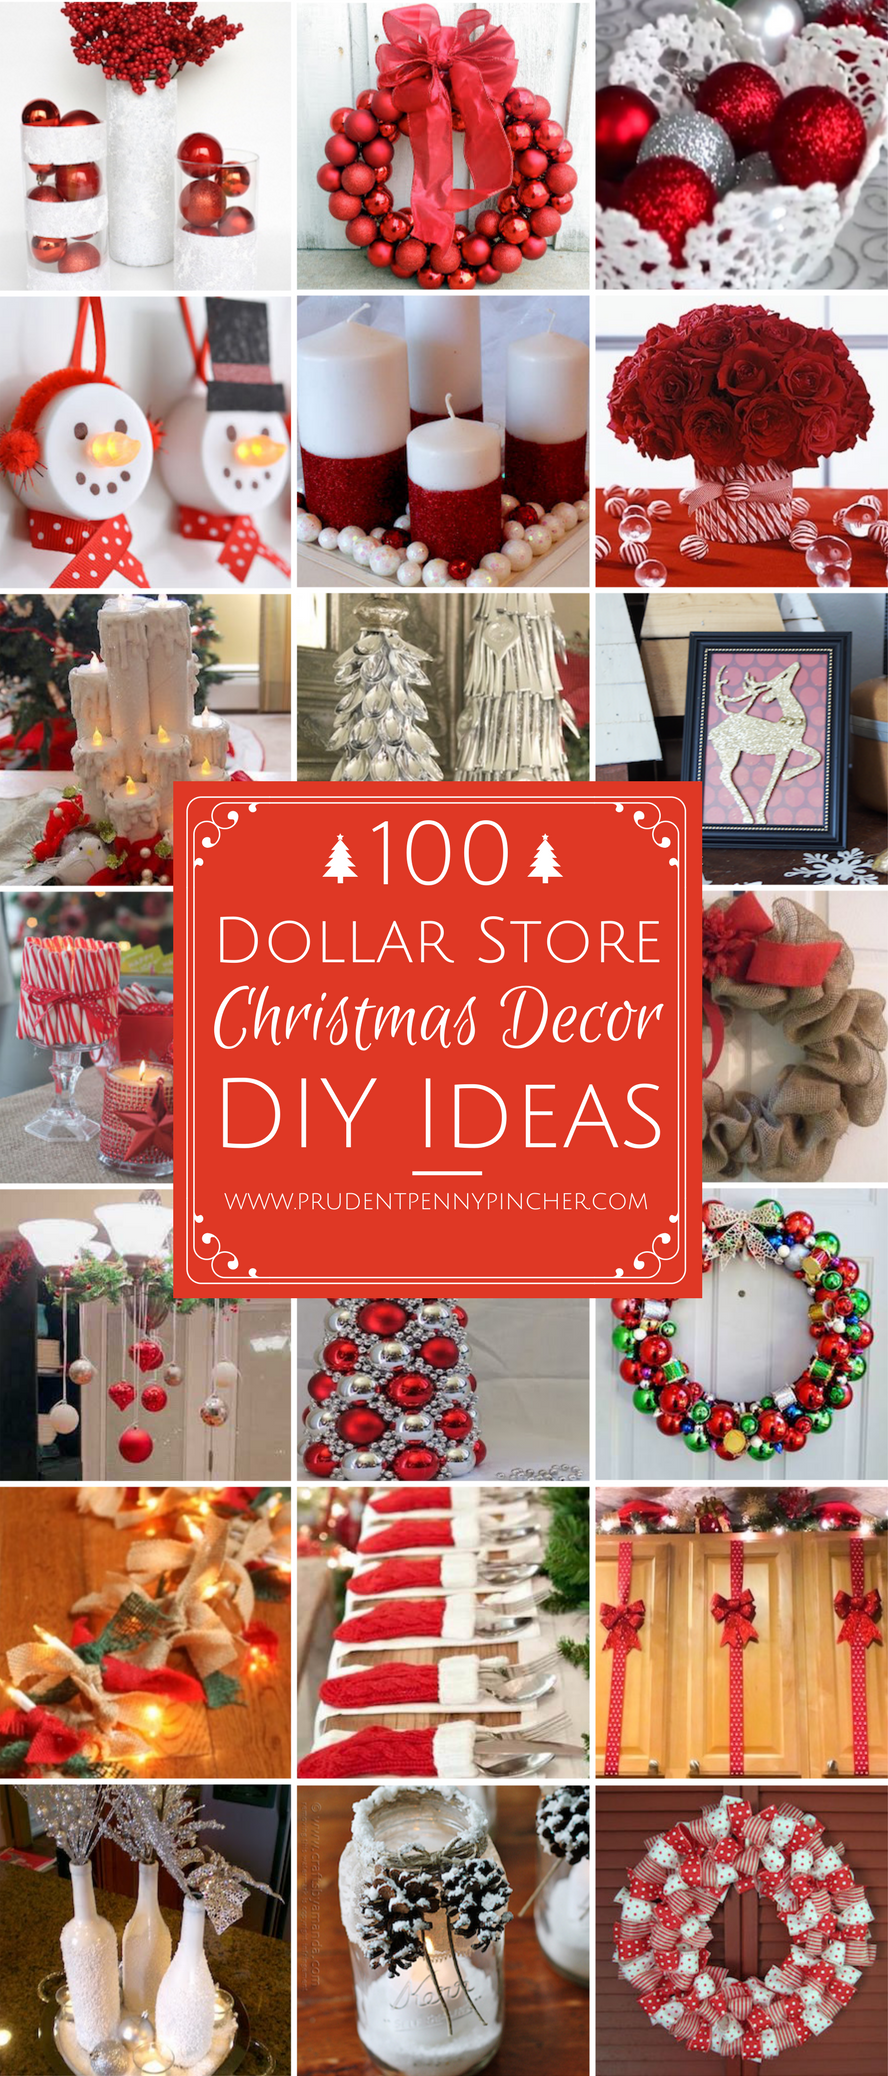 dollar store Christmas decor diy ideas